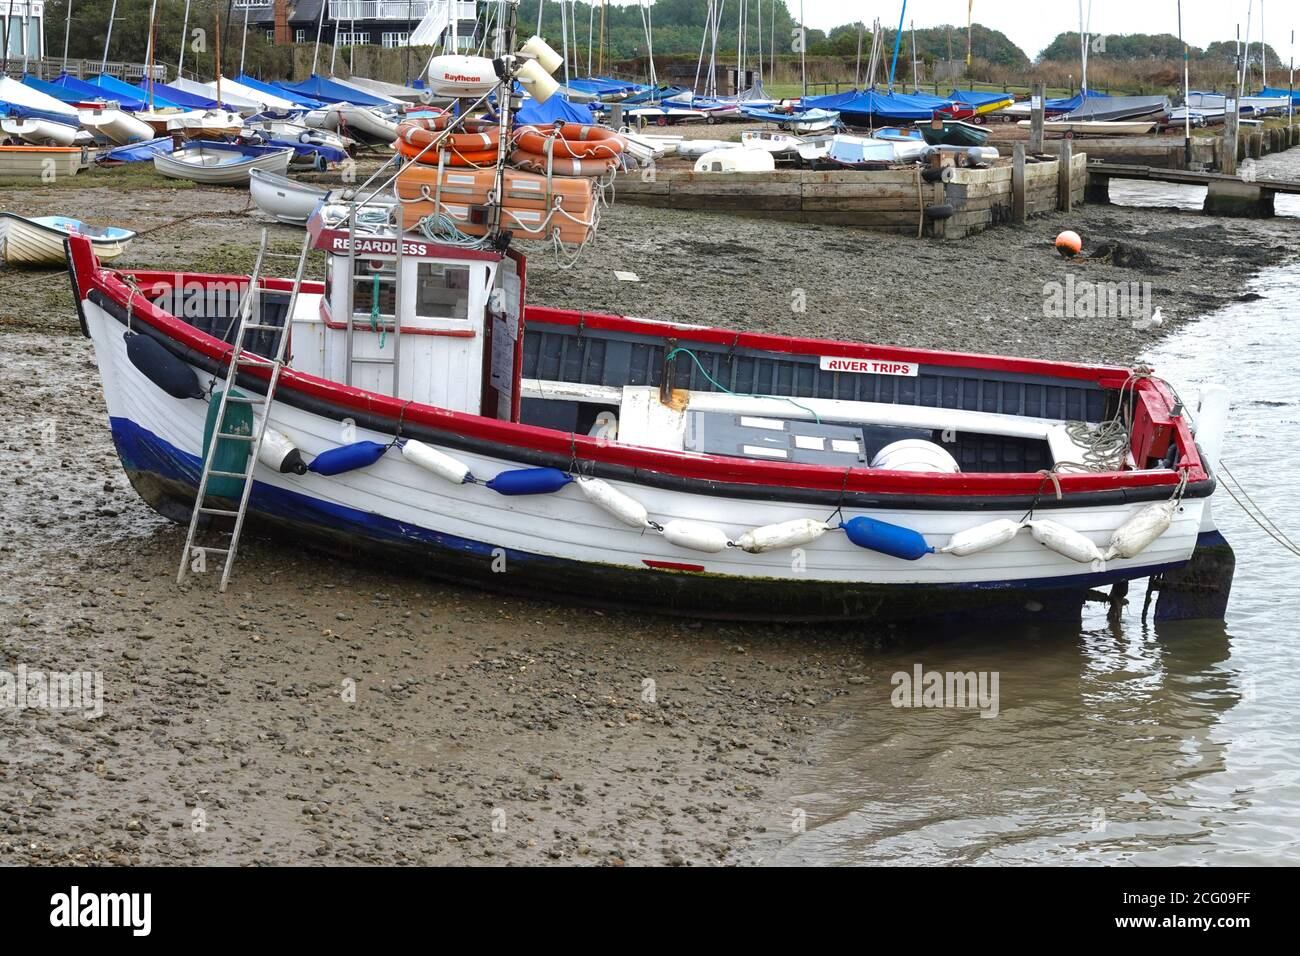 Orford, Suffolk, UK - 8 September 2020: The Regardless fishing boat on the beach at Orford Quay. Stock Photo